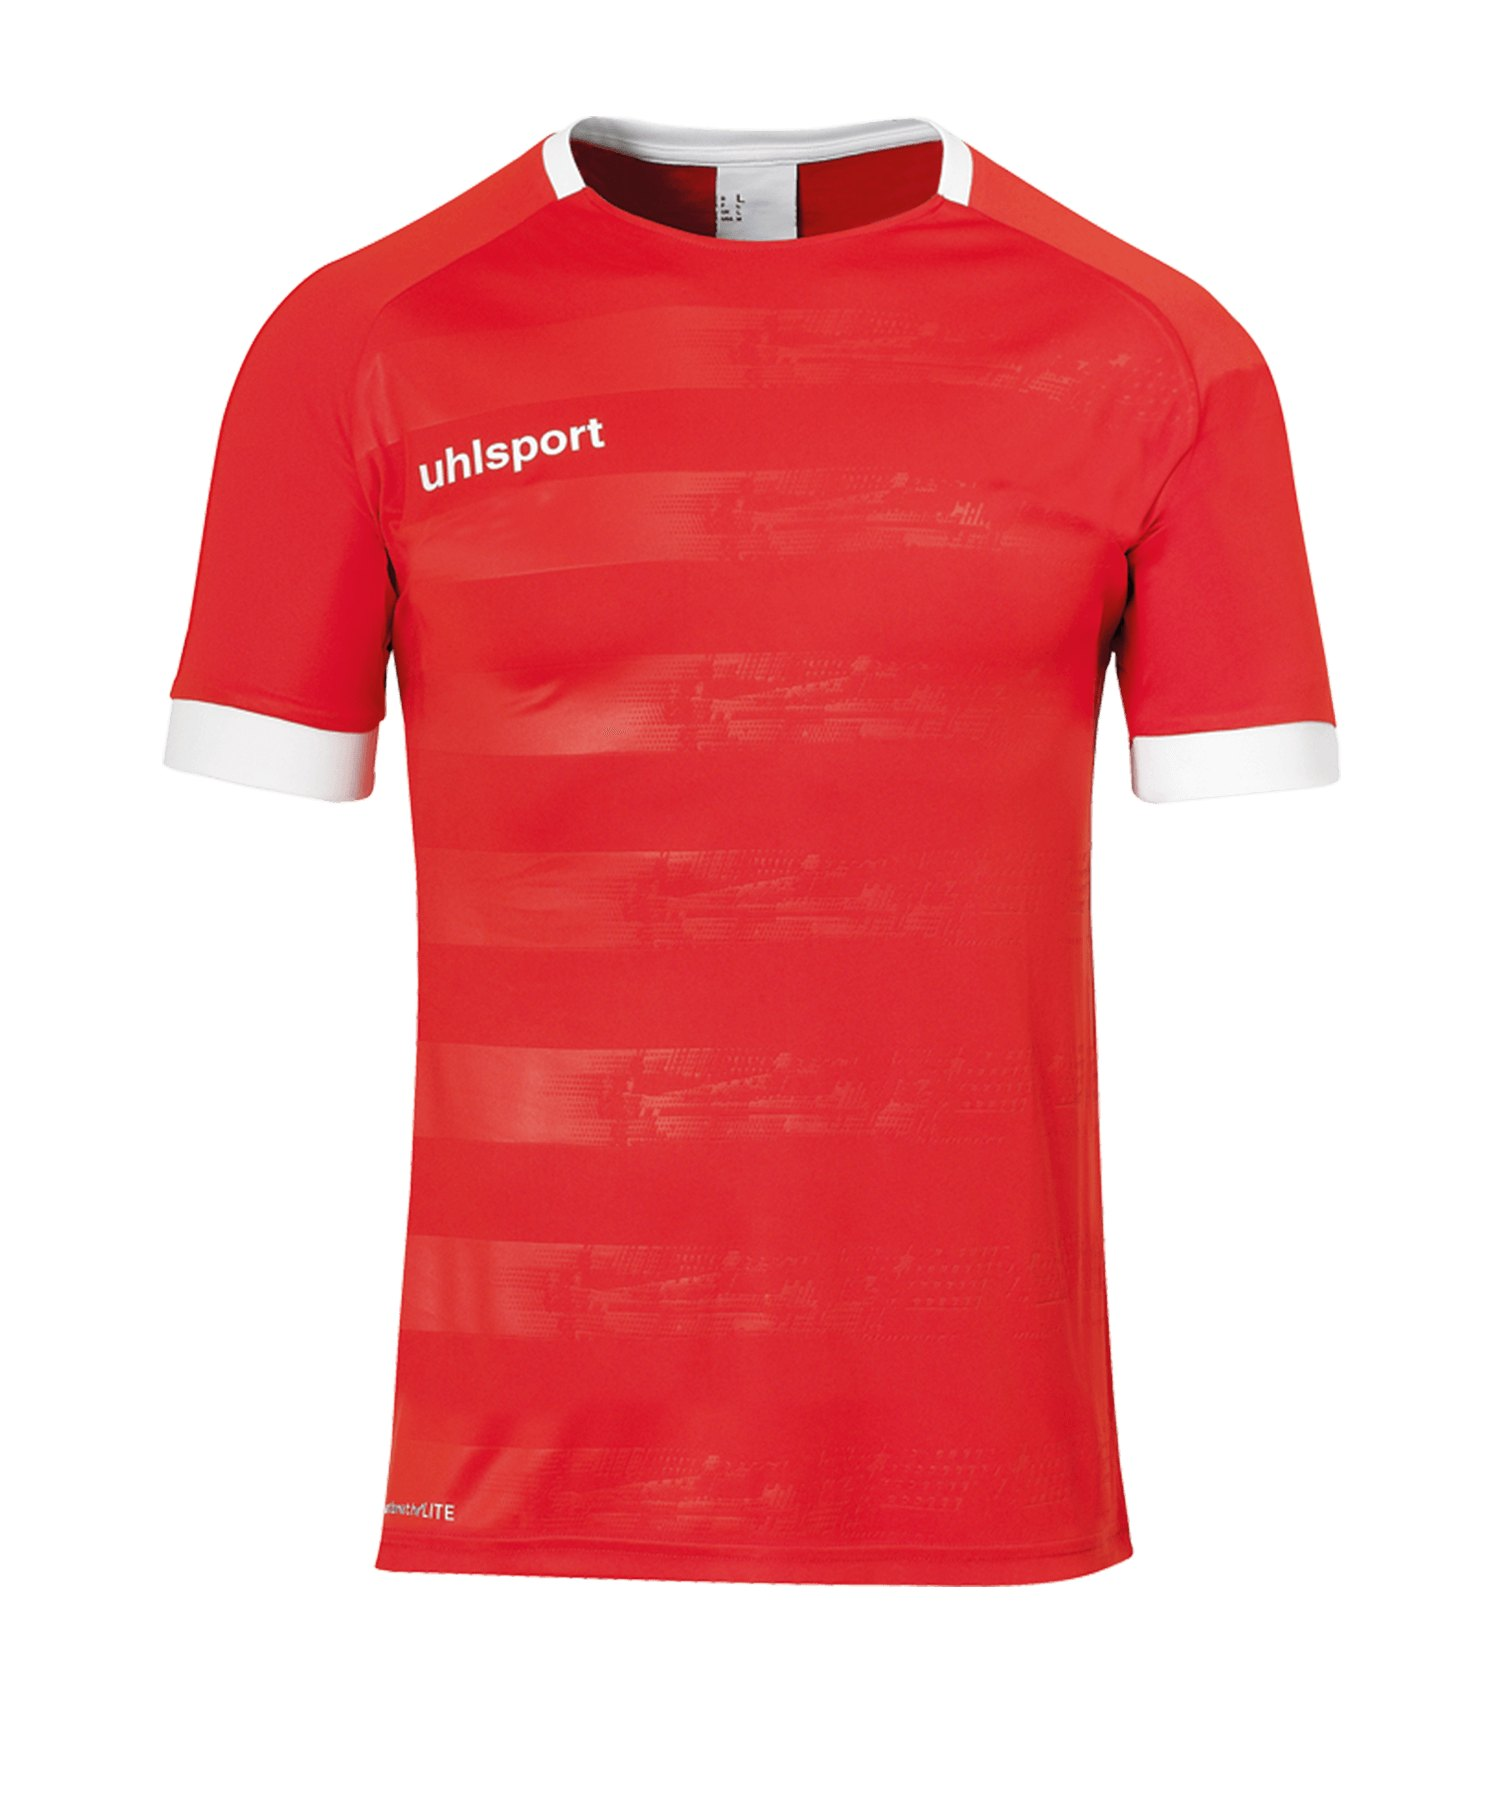 Uhlsport Division II Trikot kurzarm Rot Weiss F04 - rot